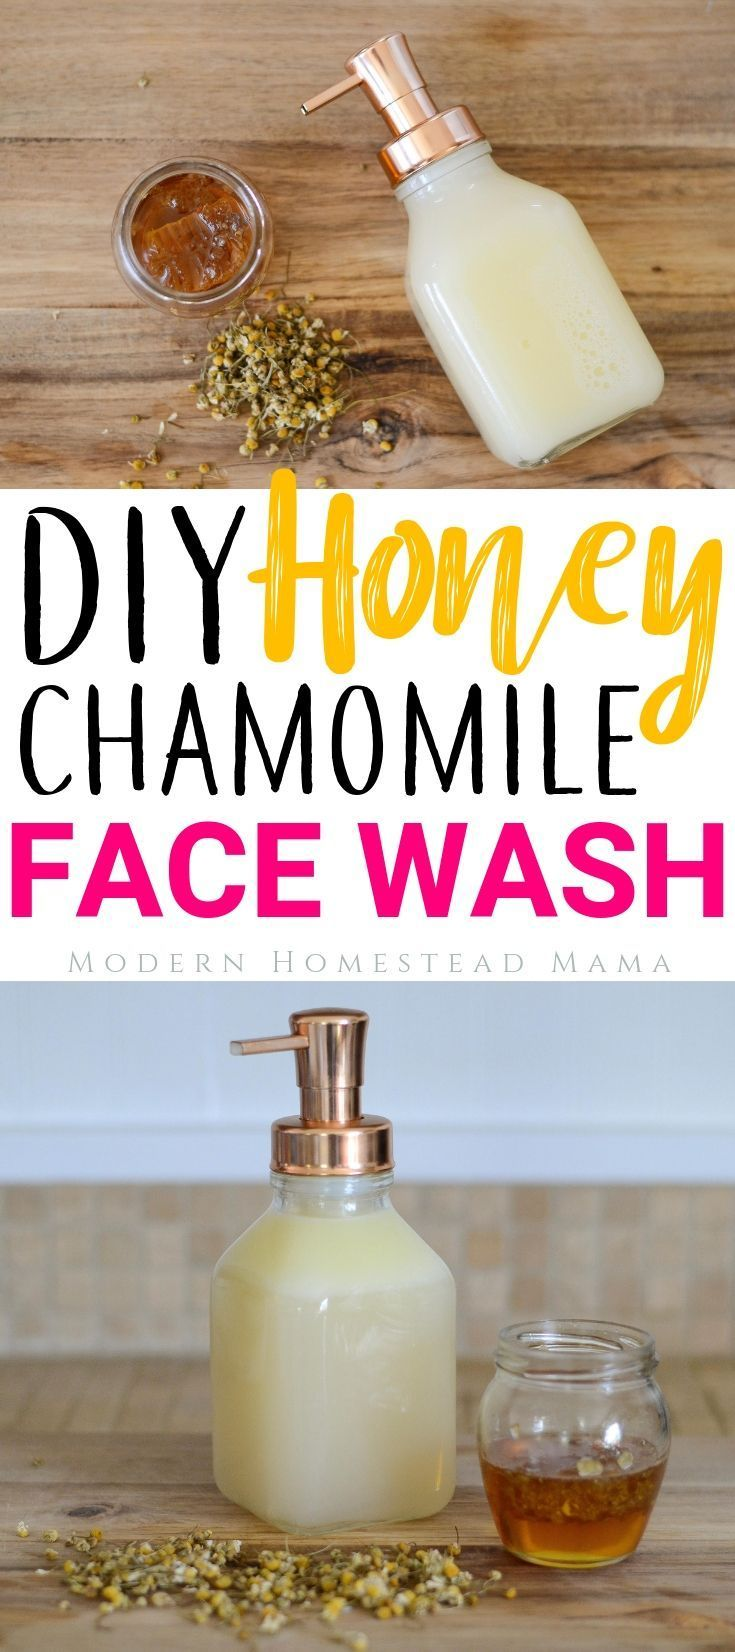 DIY Face Wash - Honey Chamomile For Sensitive Skin and Anti-Aging